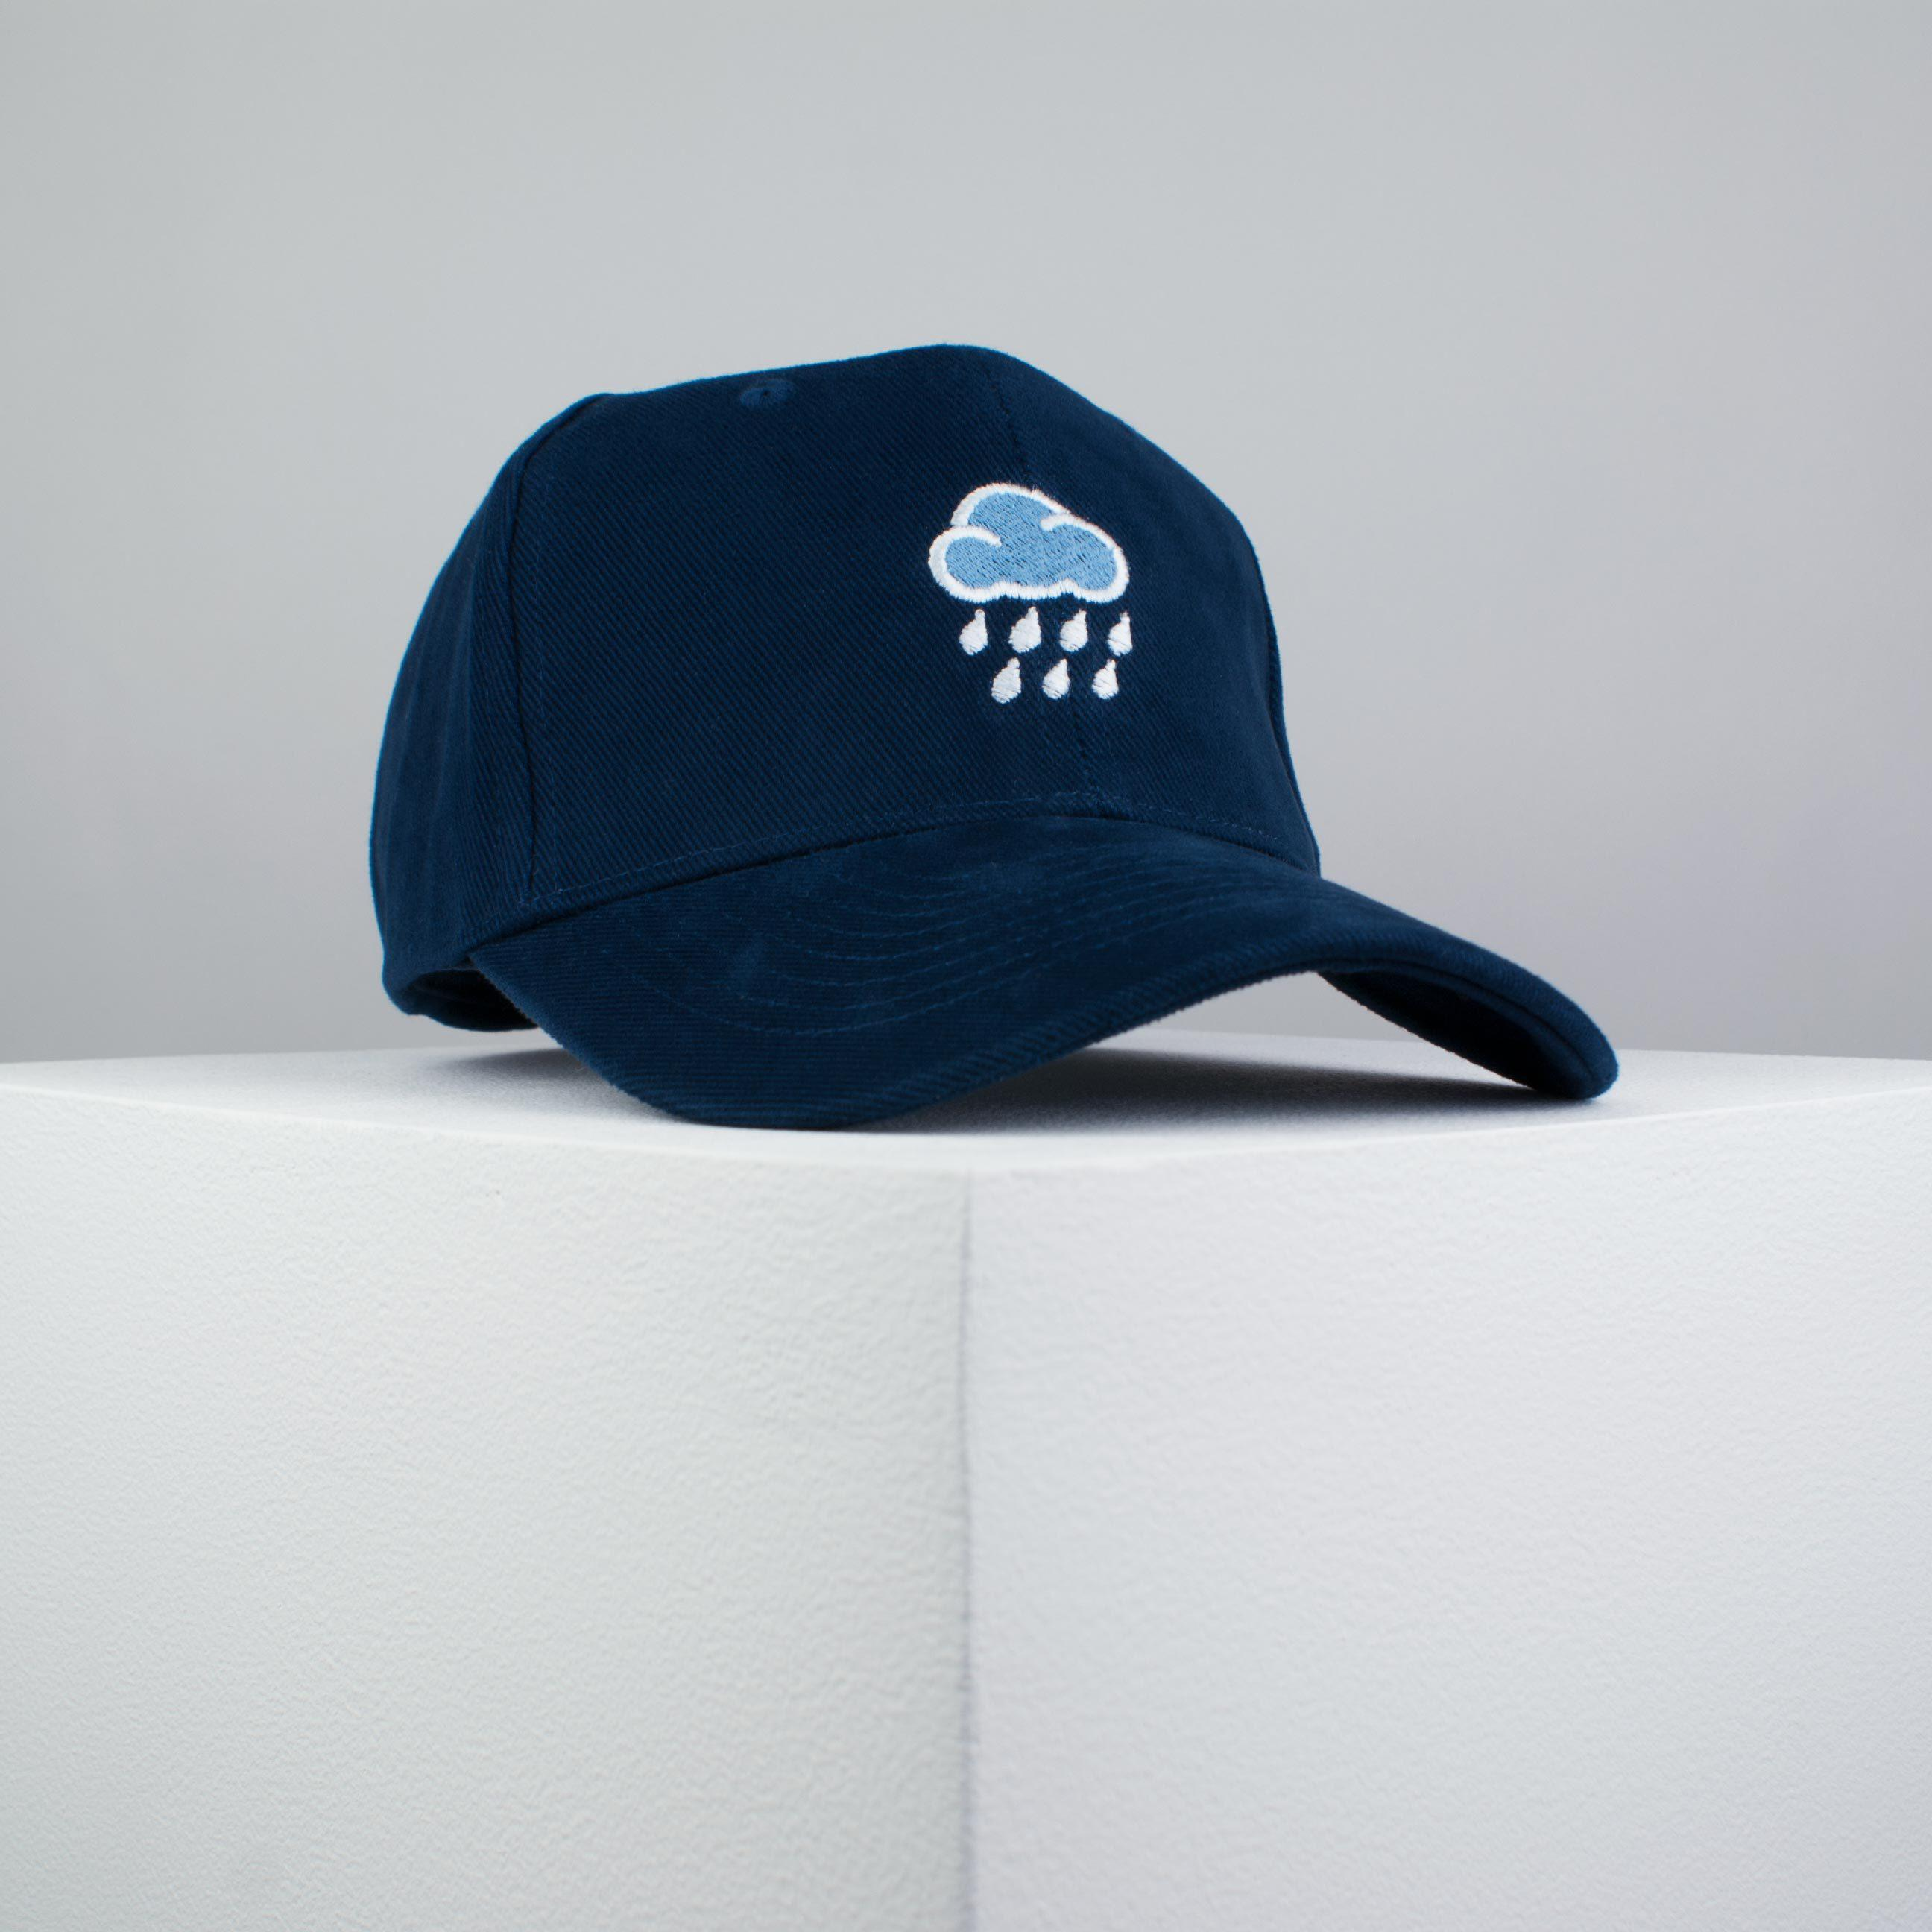 93ac88378ef Rainy day embroidered baseball cap navy   cloud   patches   anxiety    embroidery   patch ...